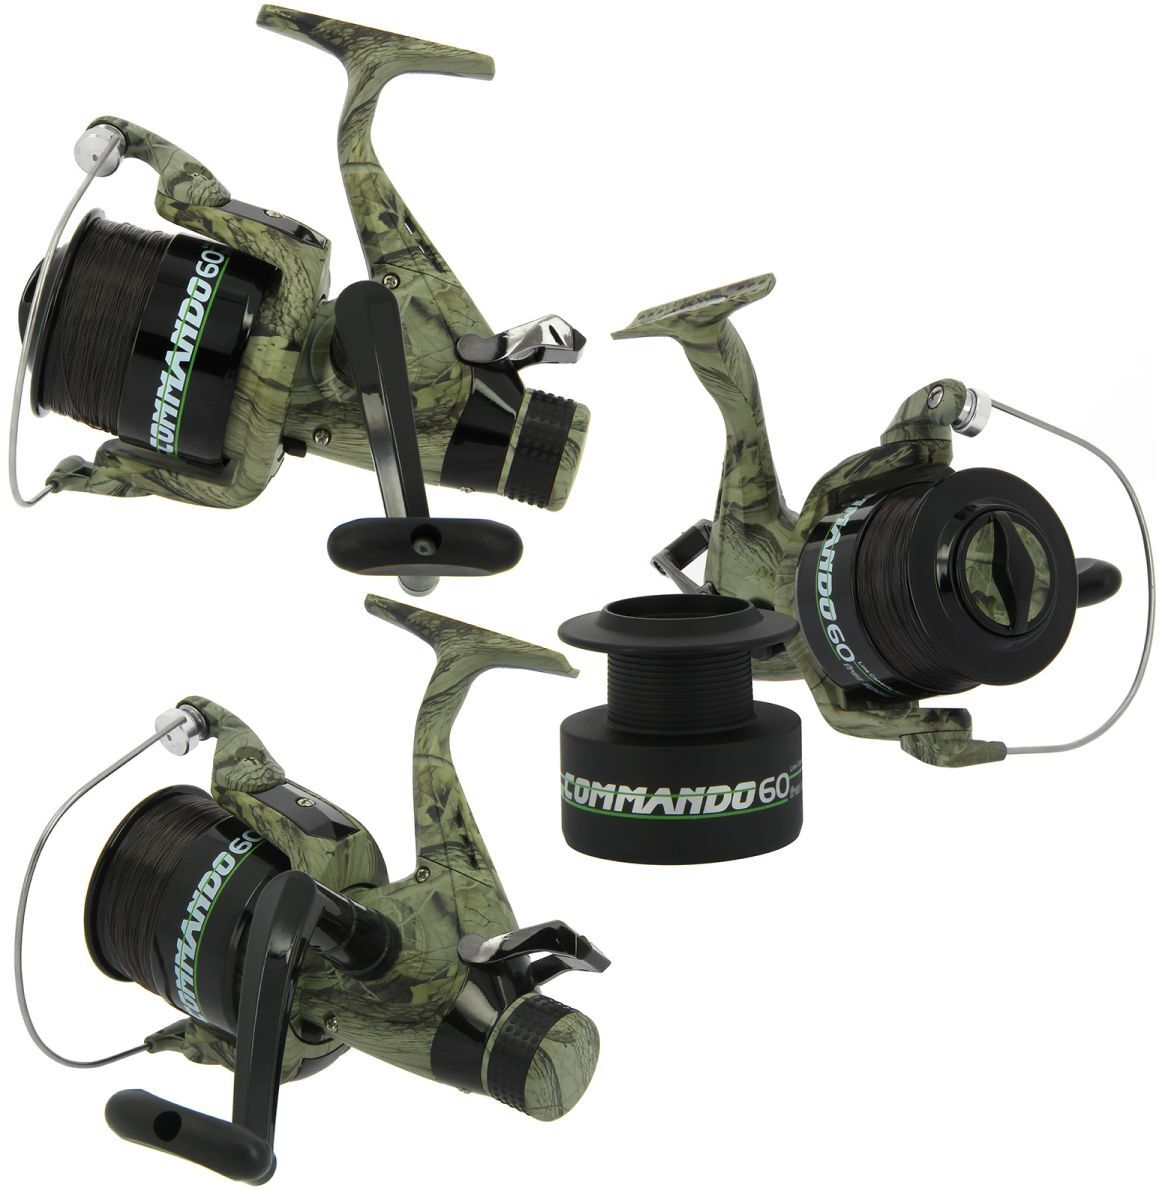 3 x  LINEAEFFE COMMANDO 60 CAMO COLOUR CARP RUNNER FISHING REELS WITH 12LB LINE  hot